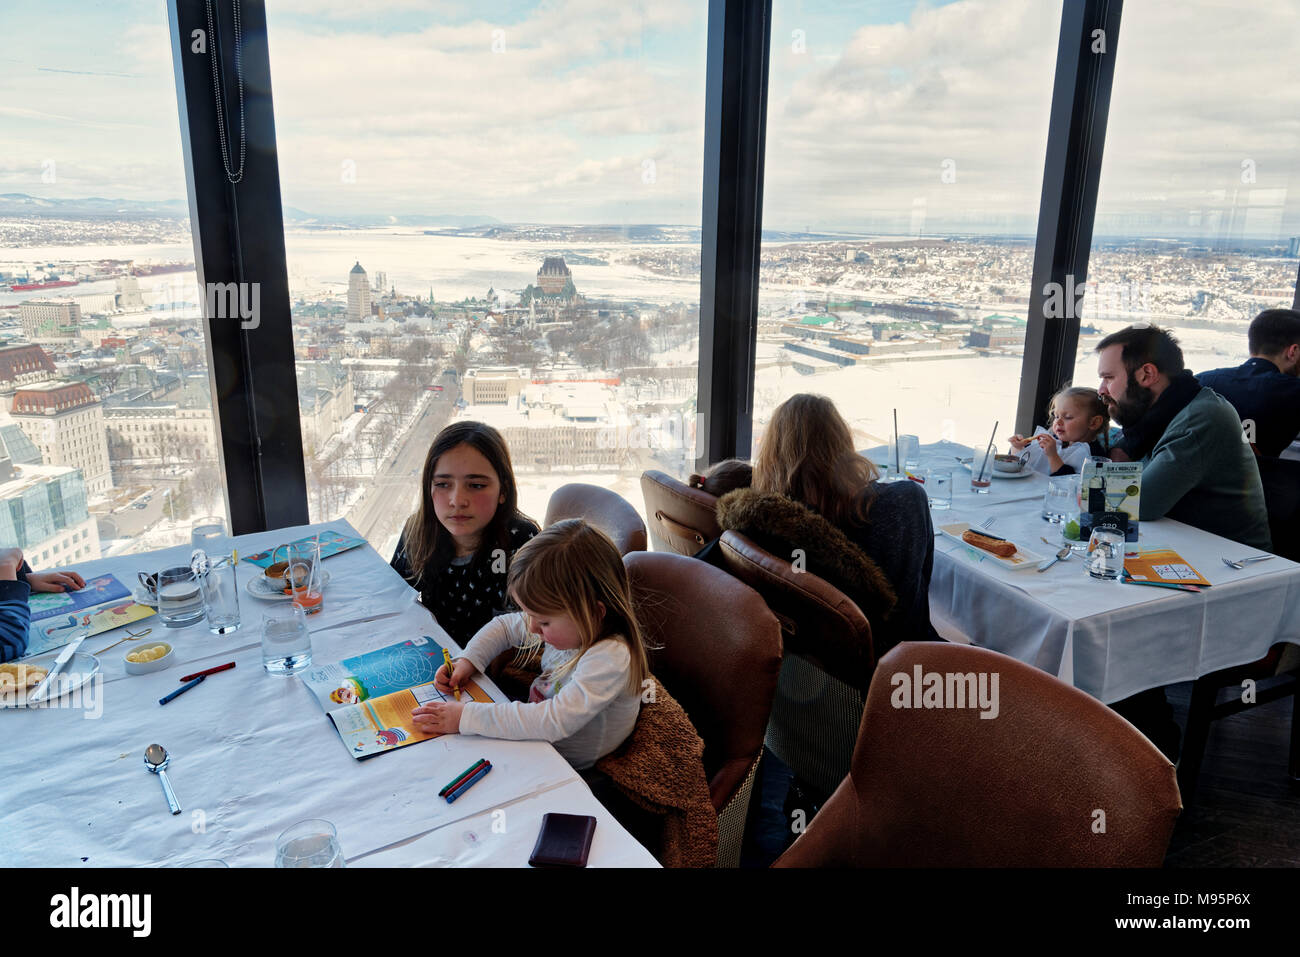 Families dining in the Ciel! rotating restaurant in Quebec City, with iews across the frozen St Lawrence and the Chateau Frontenac - Stock Image